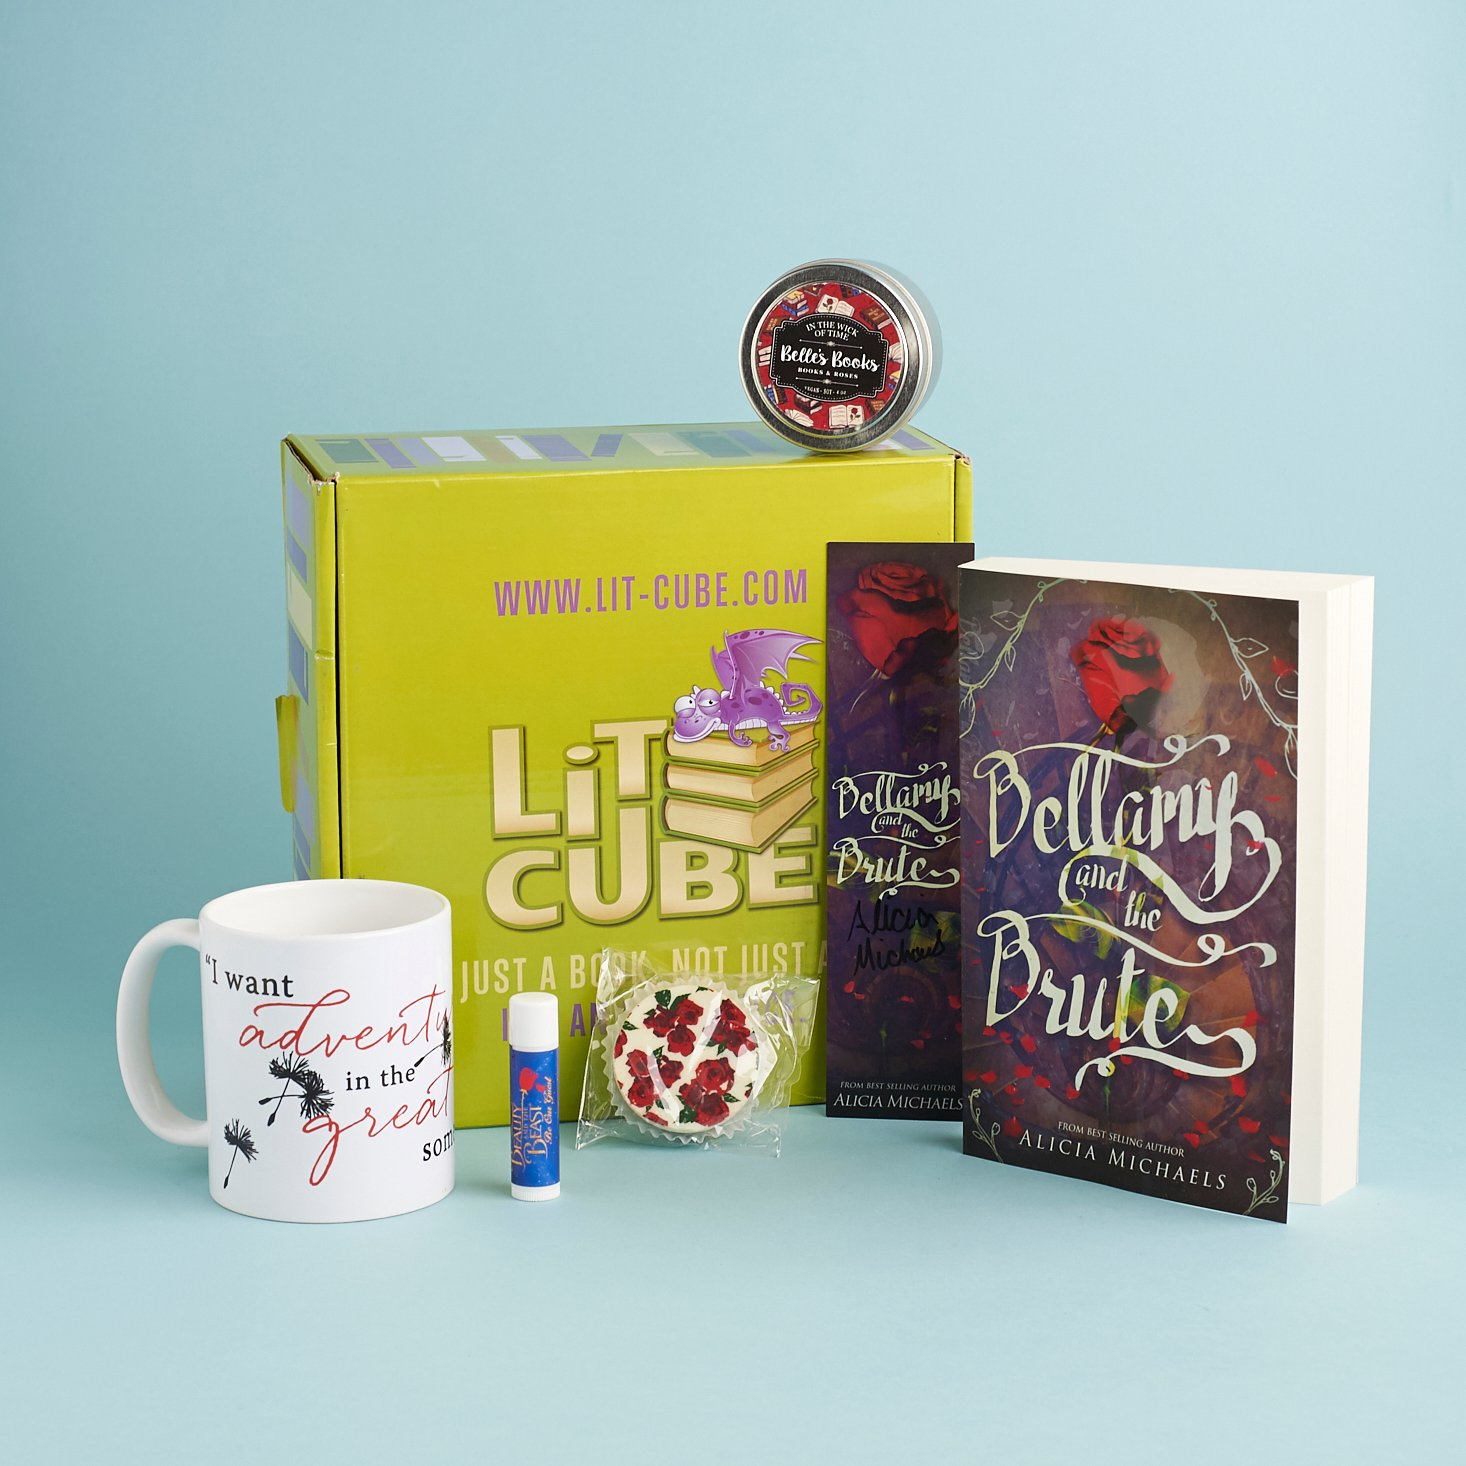 Check out our review of the March 2017 LitCube box!